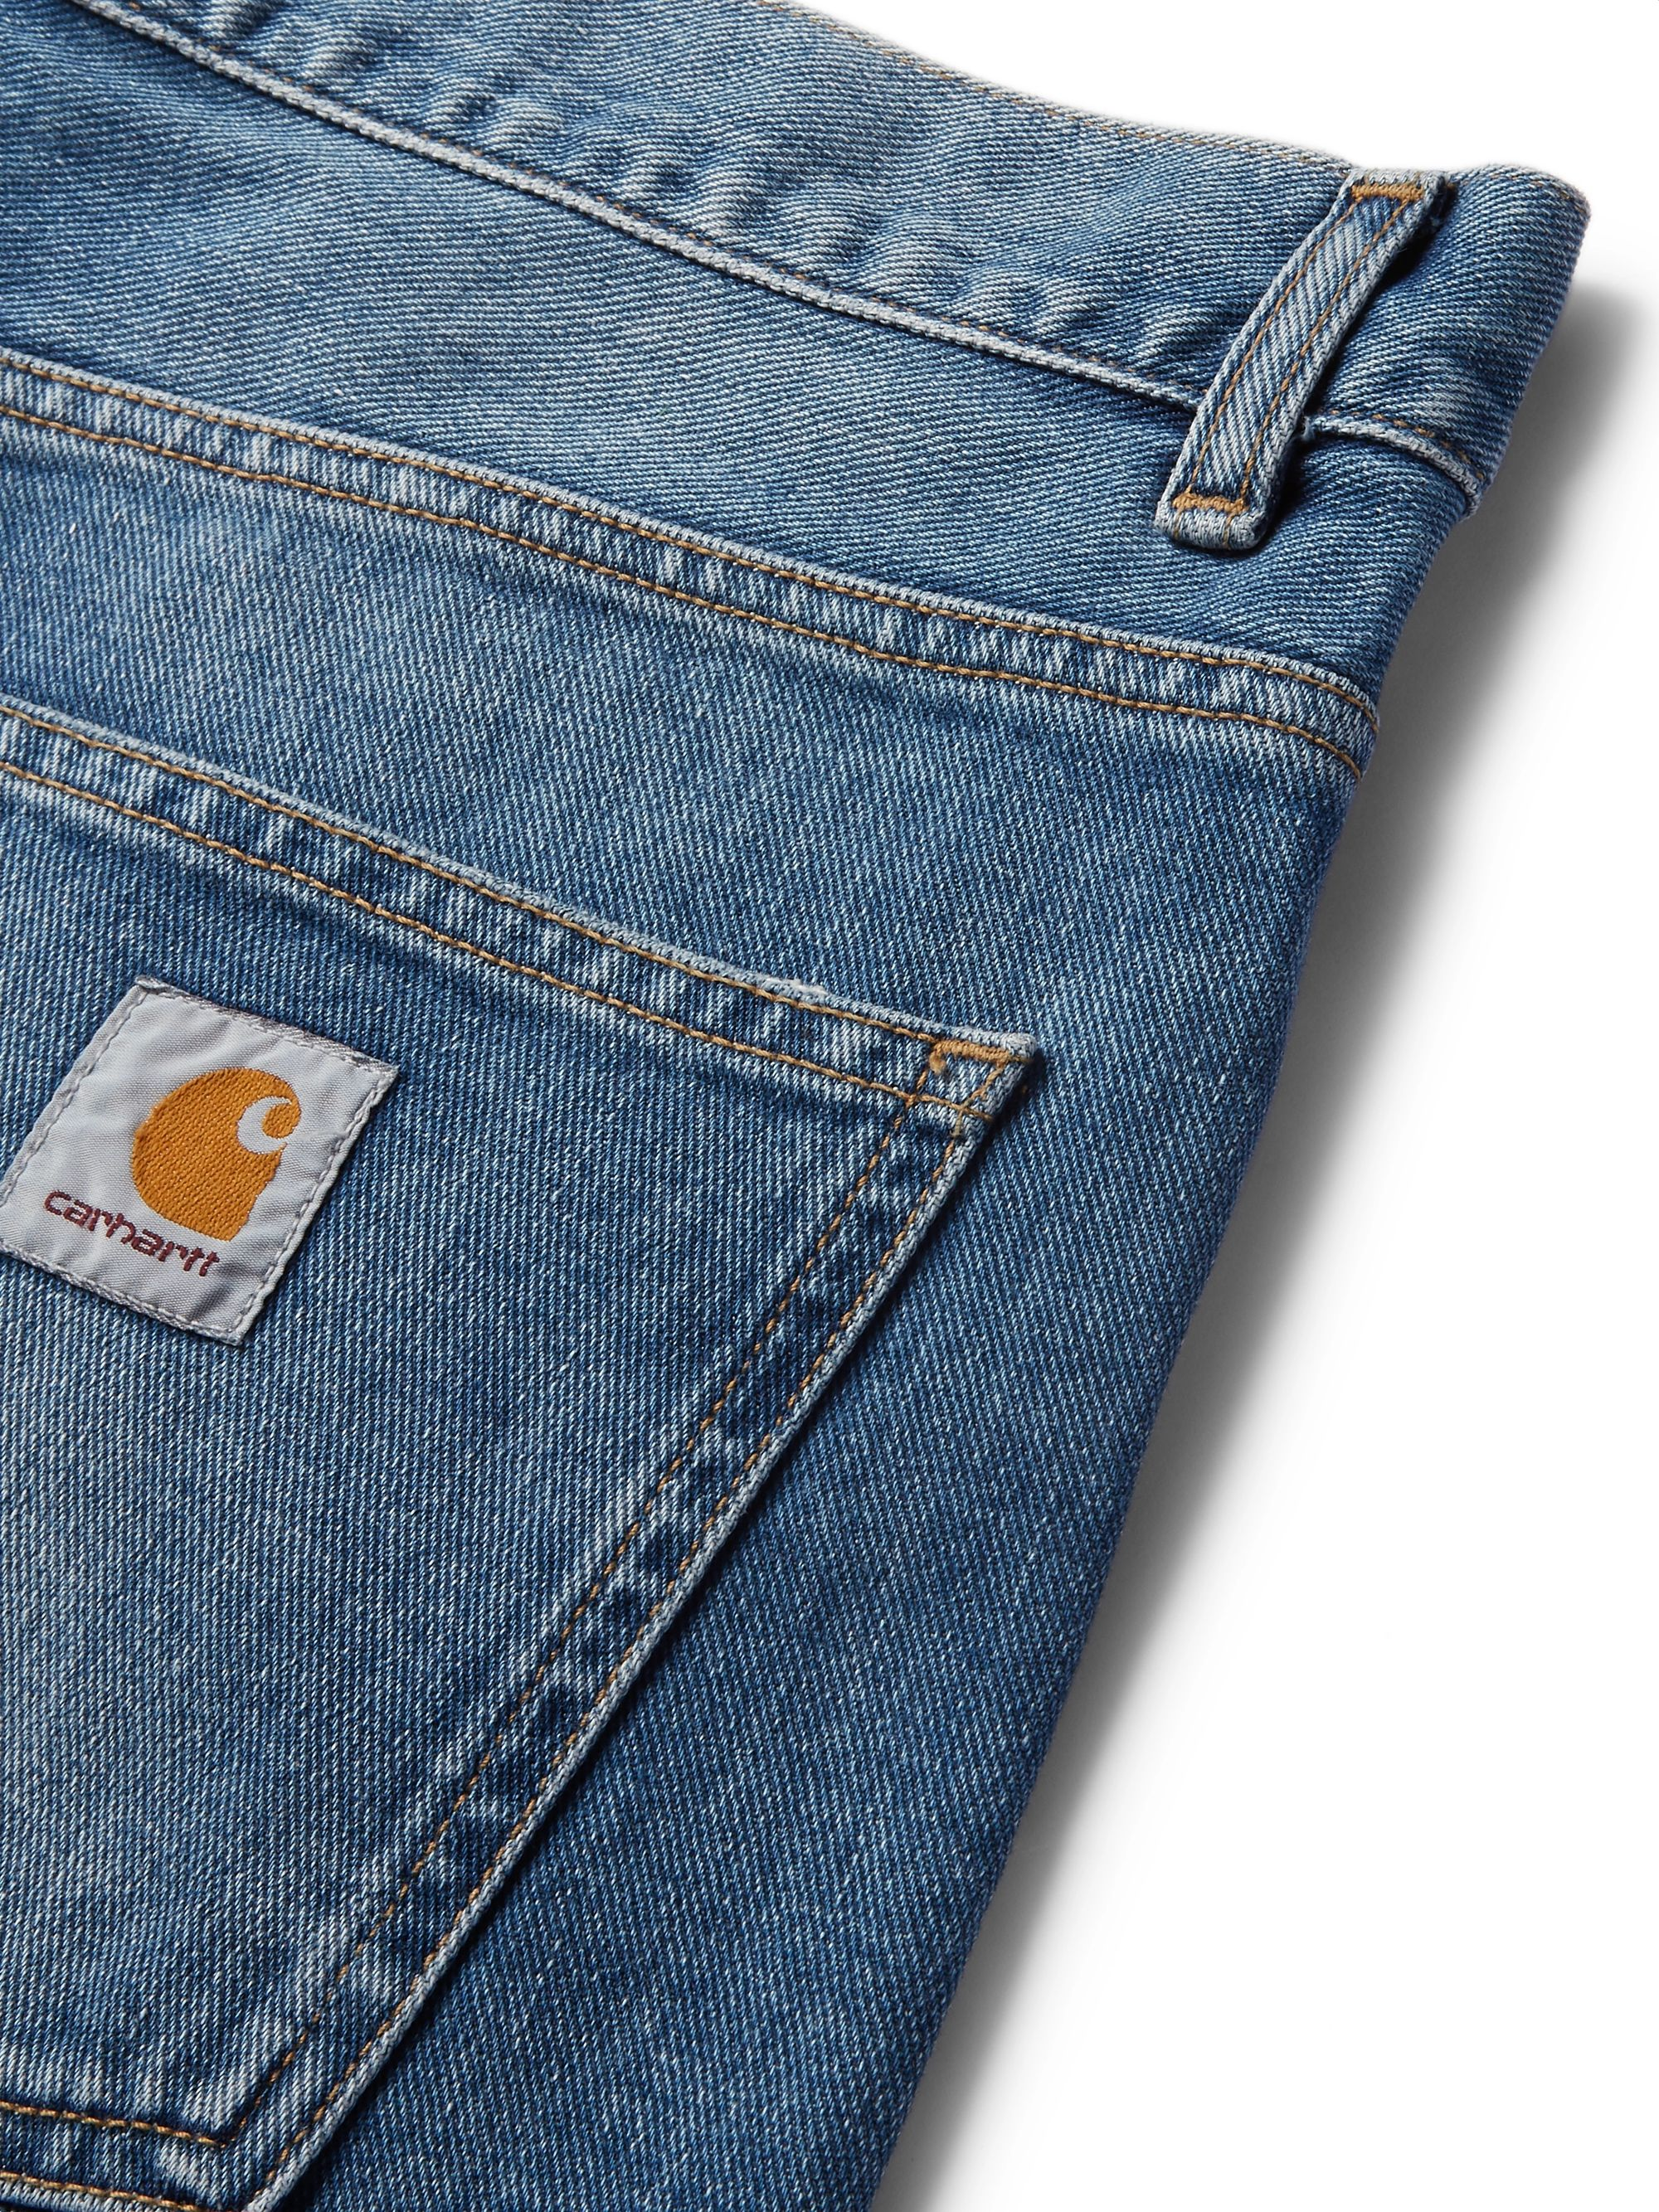 Carhartt WIP Newel Tapered Denim Jeans